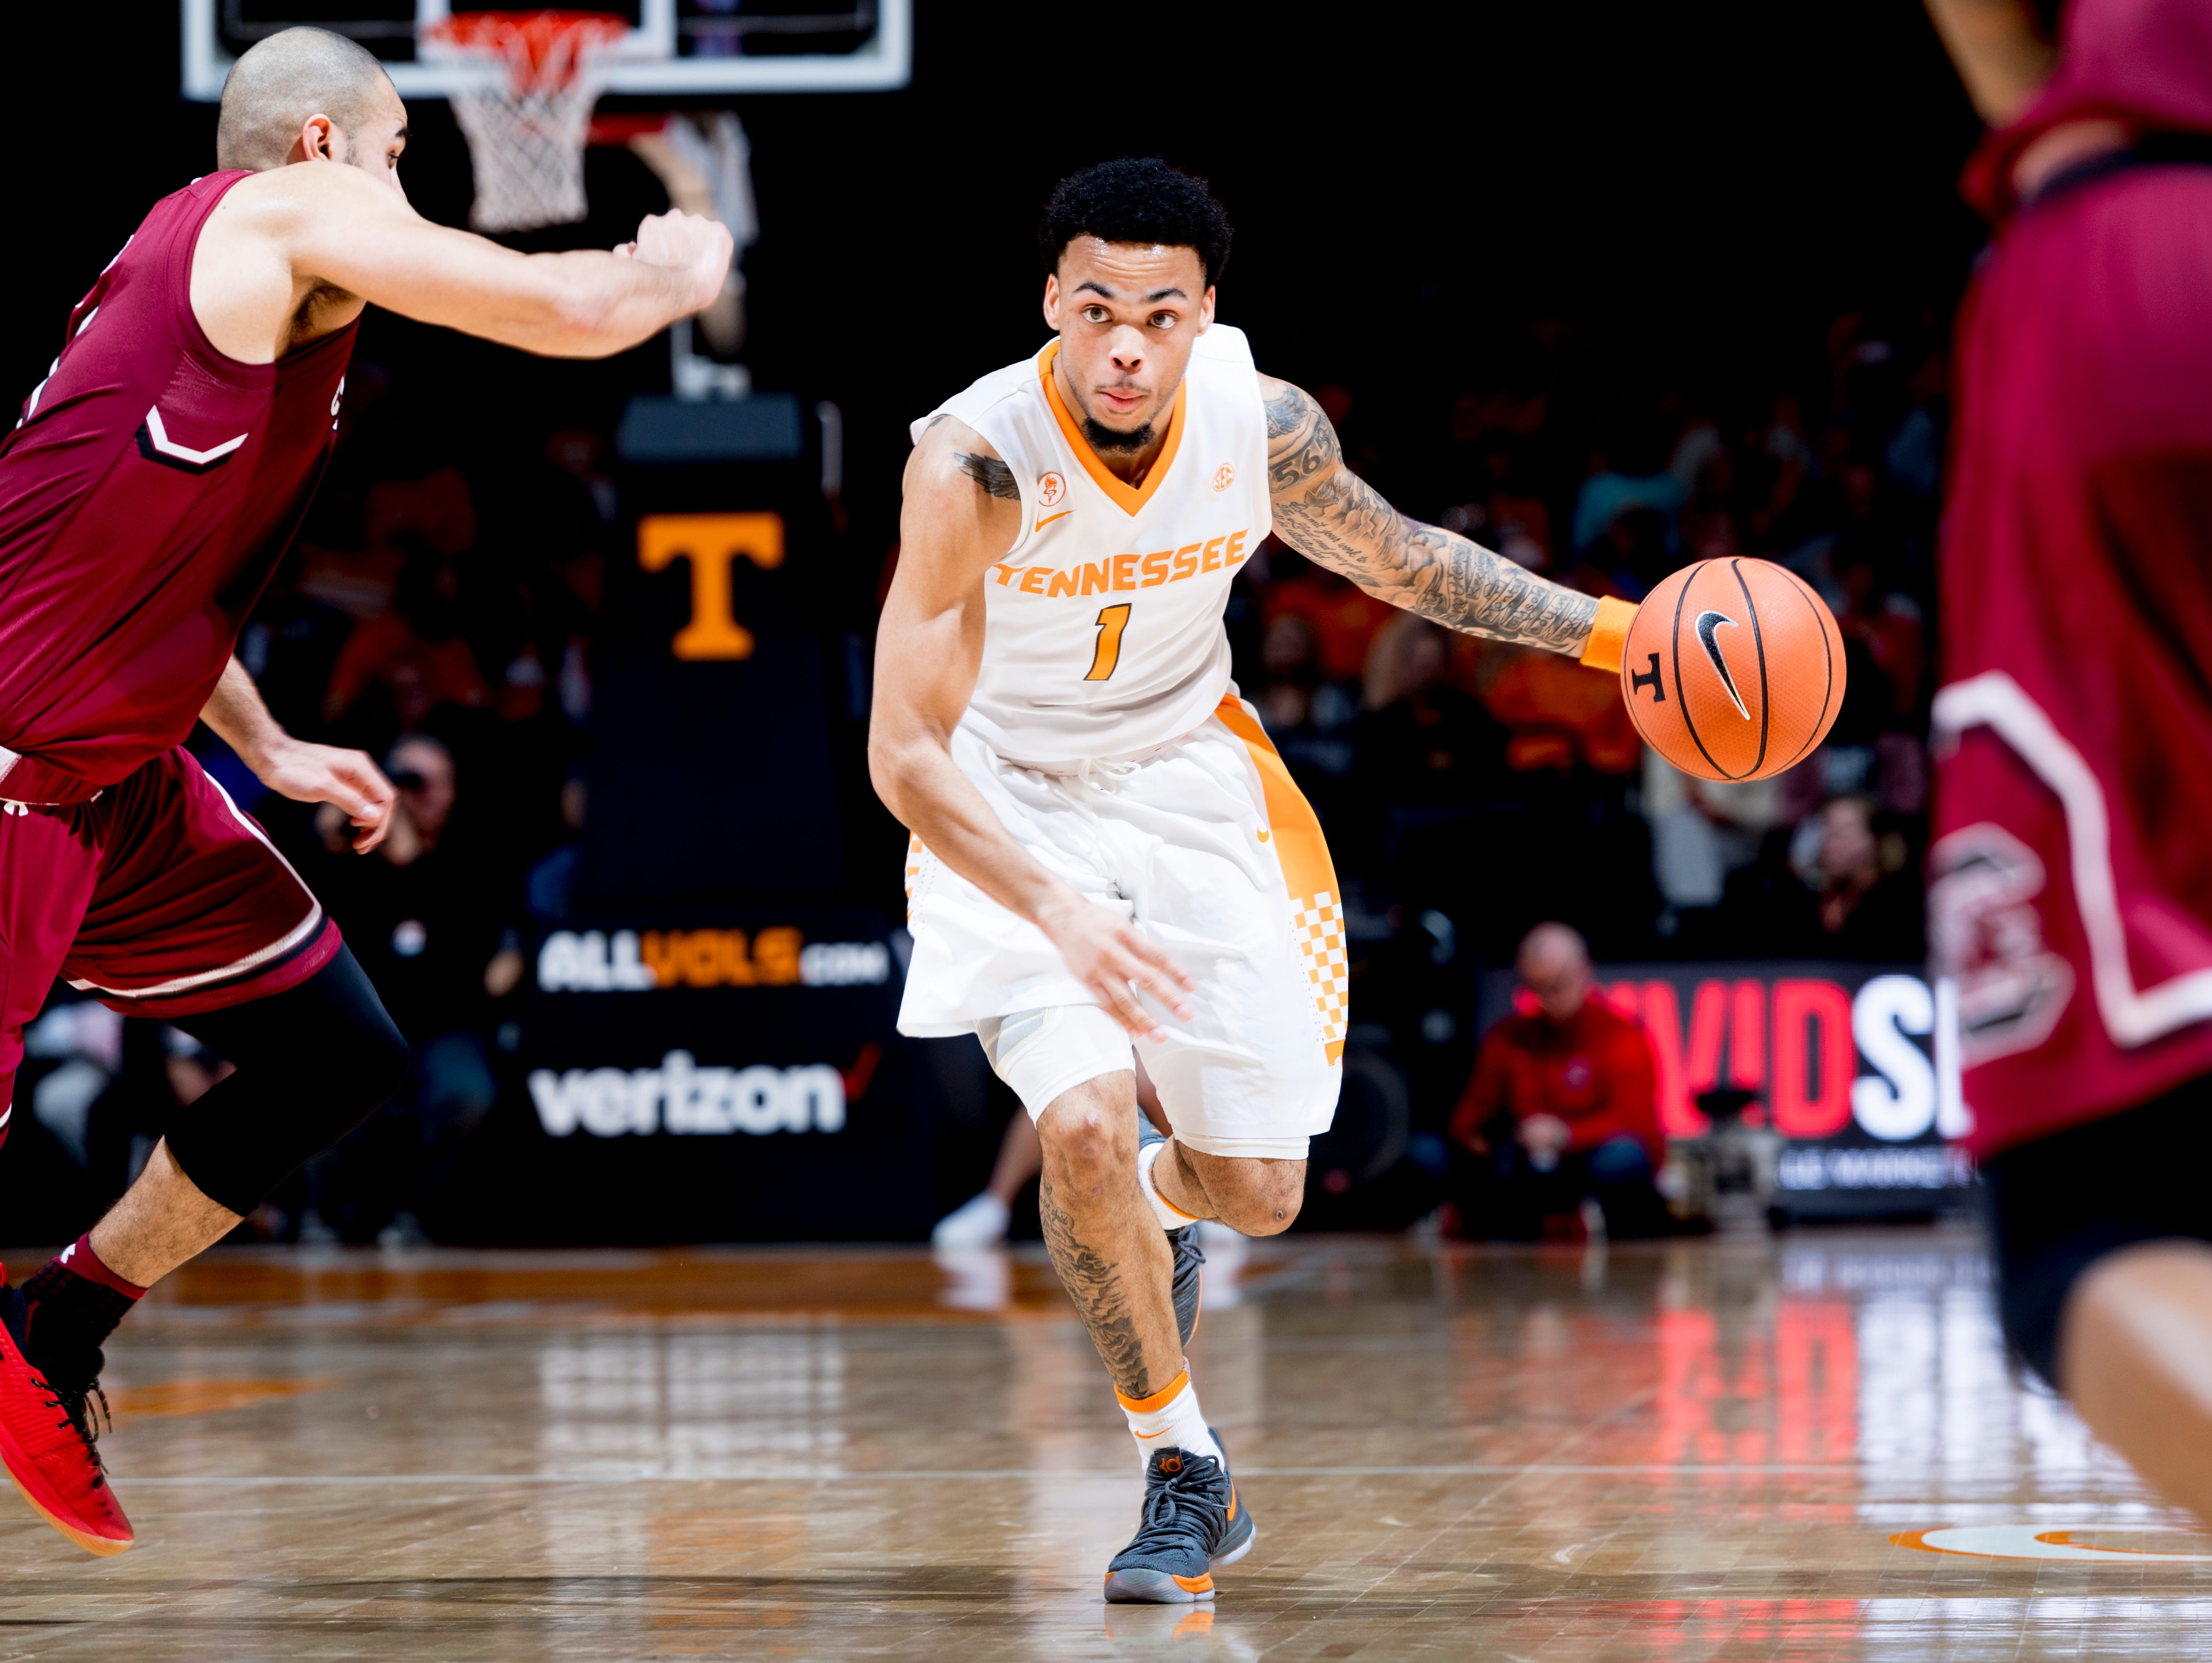 Tennessee Will Need 3 Point Shooting As Well As Defense